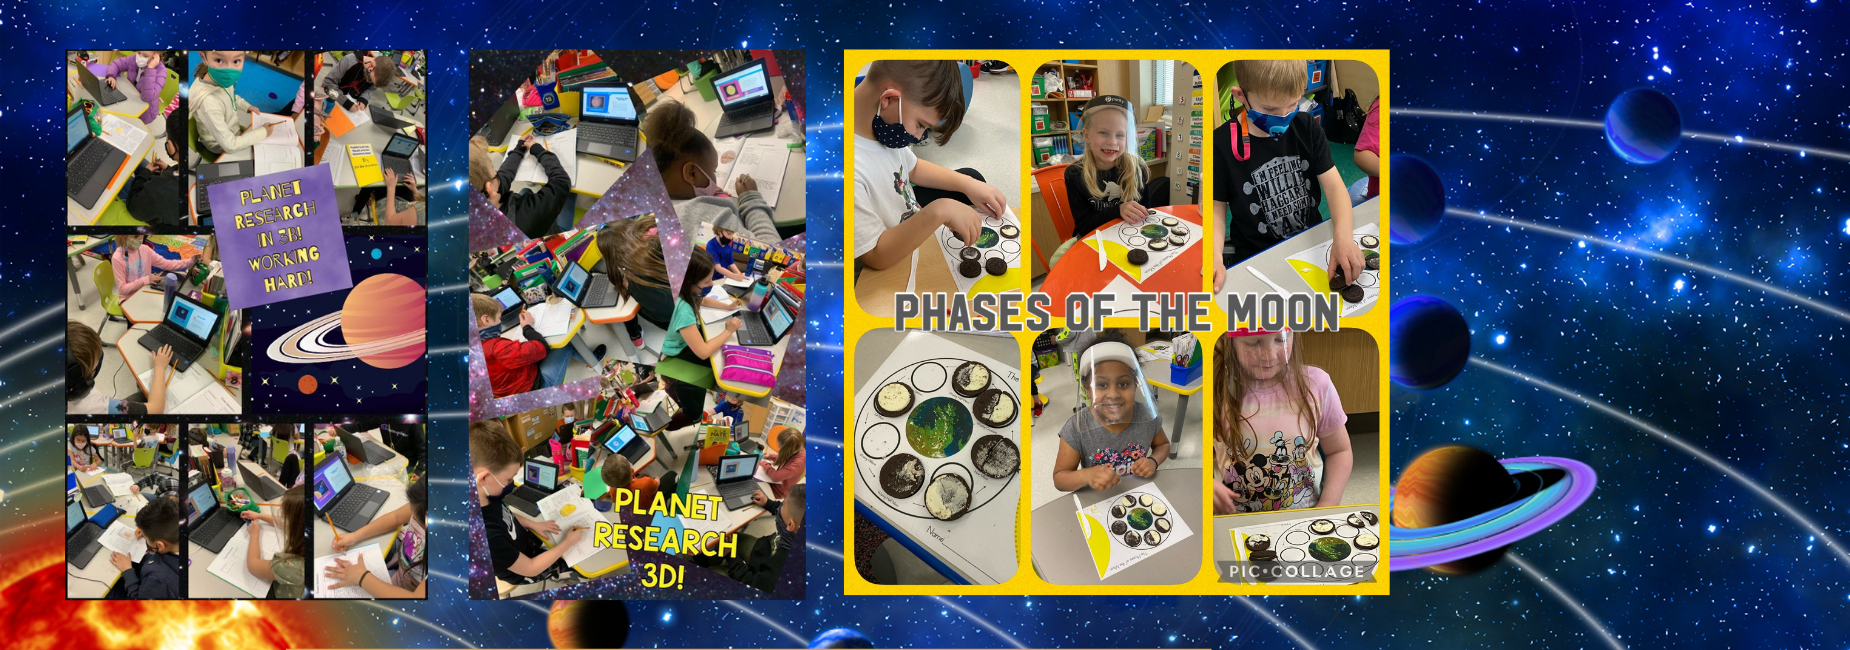 collage of images showing students learning about the solar system